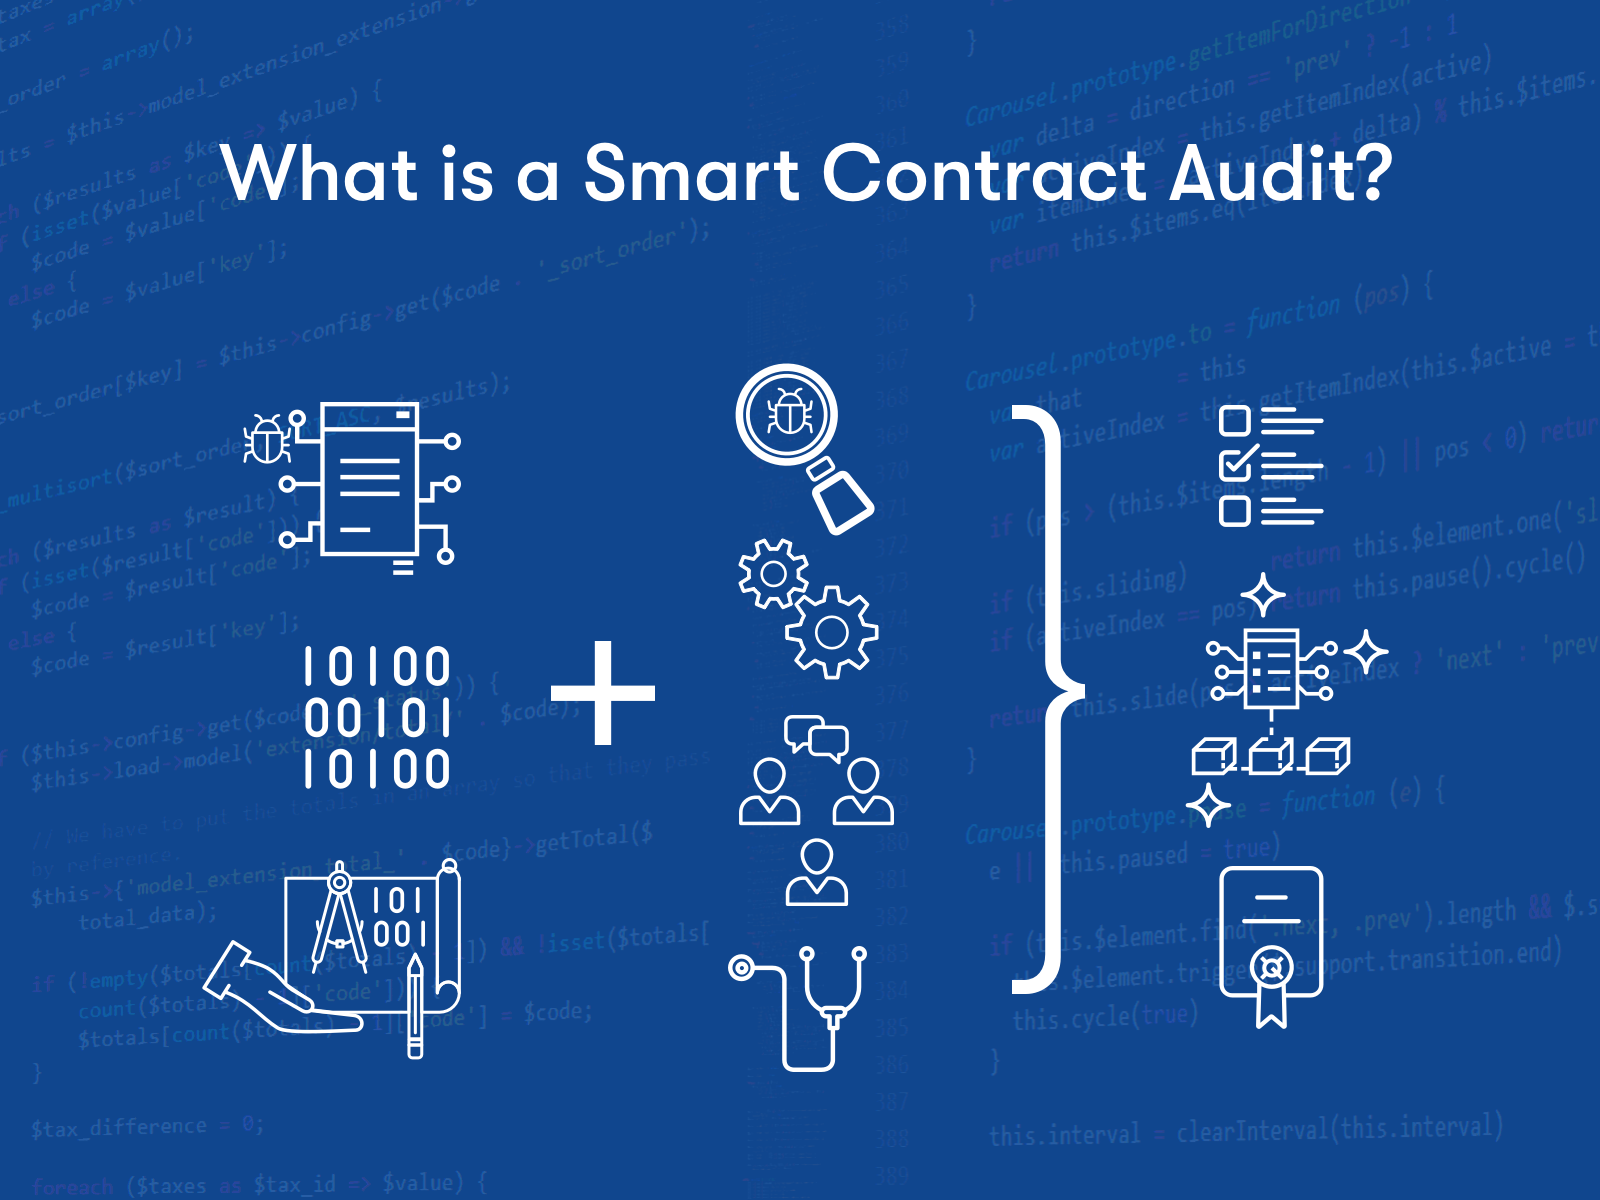 Featured Article: What is a Smart Contract Audit?